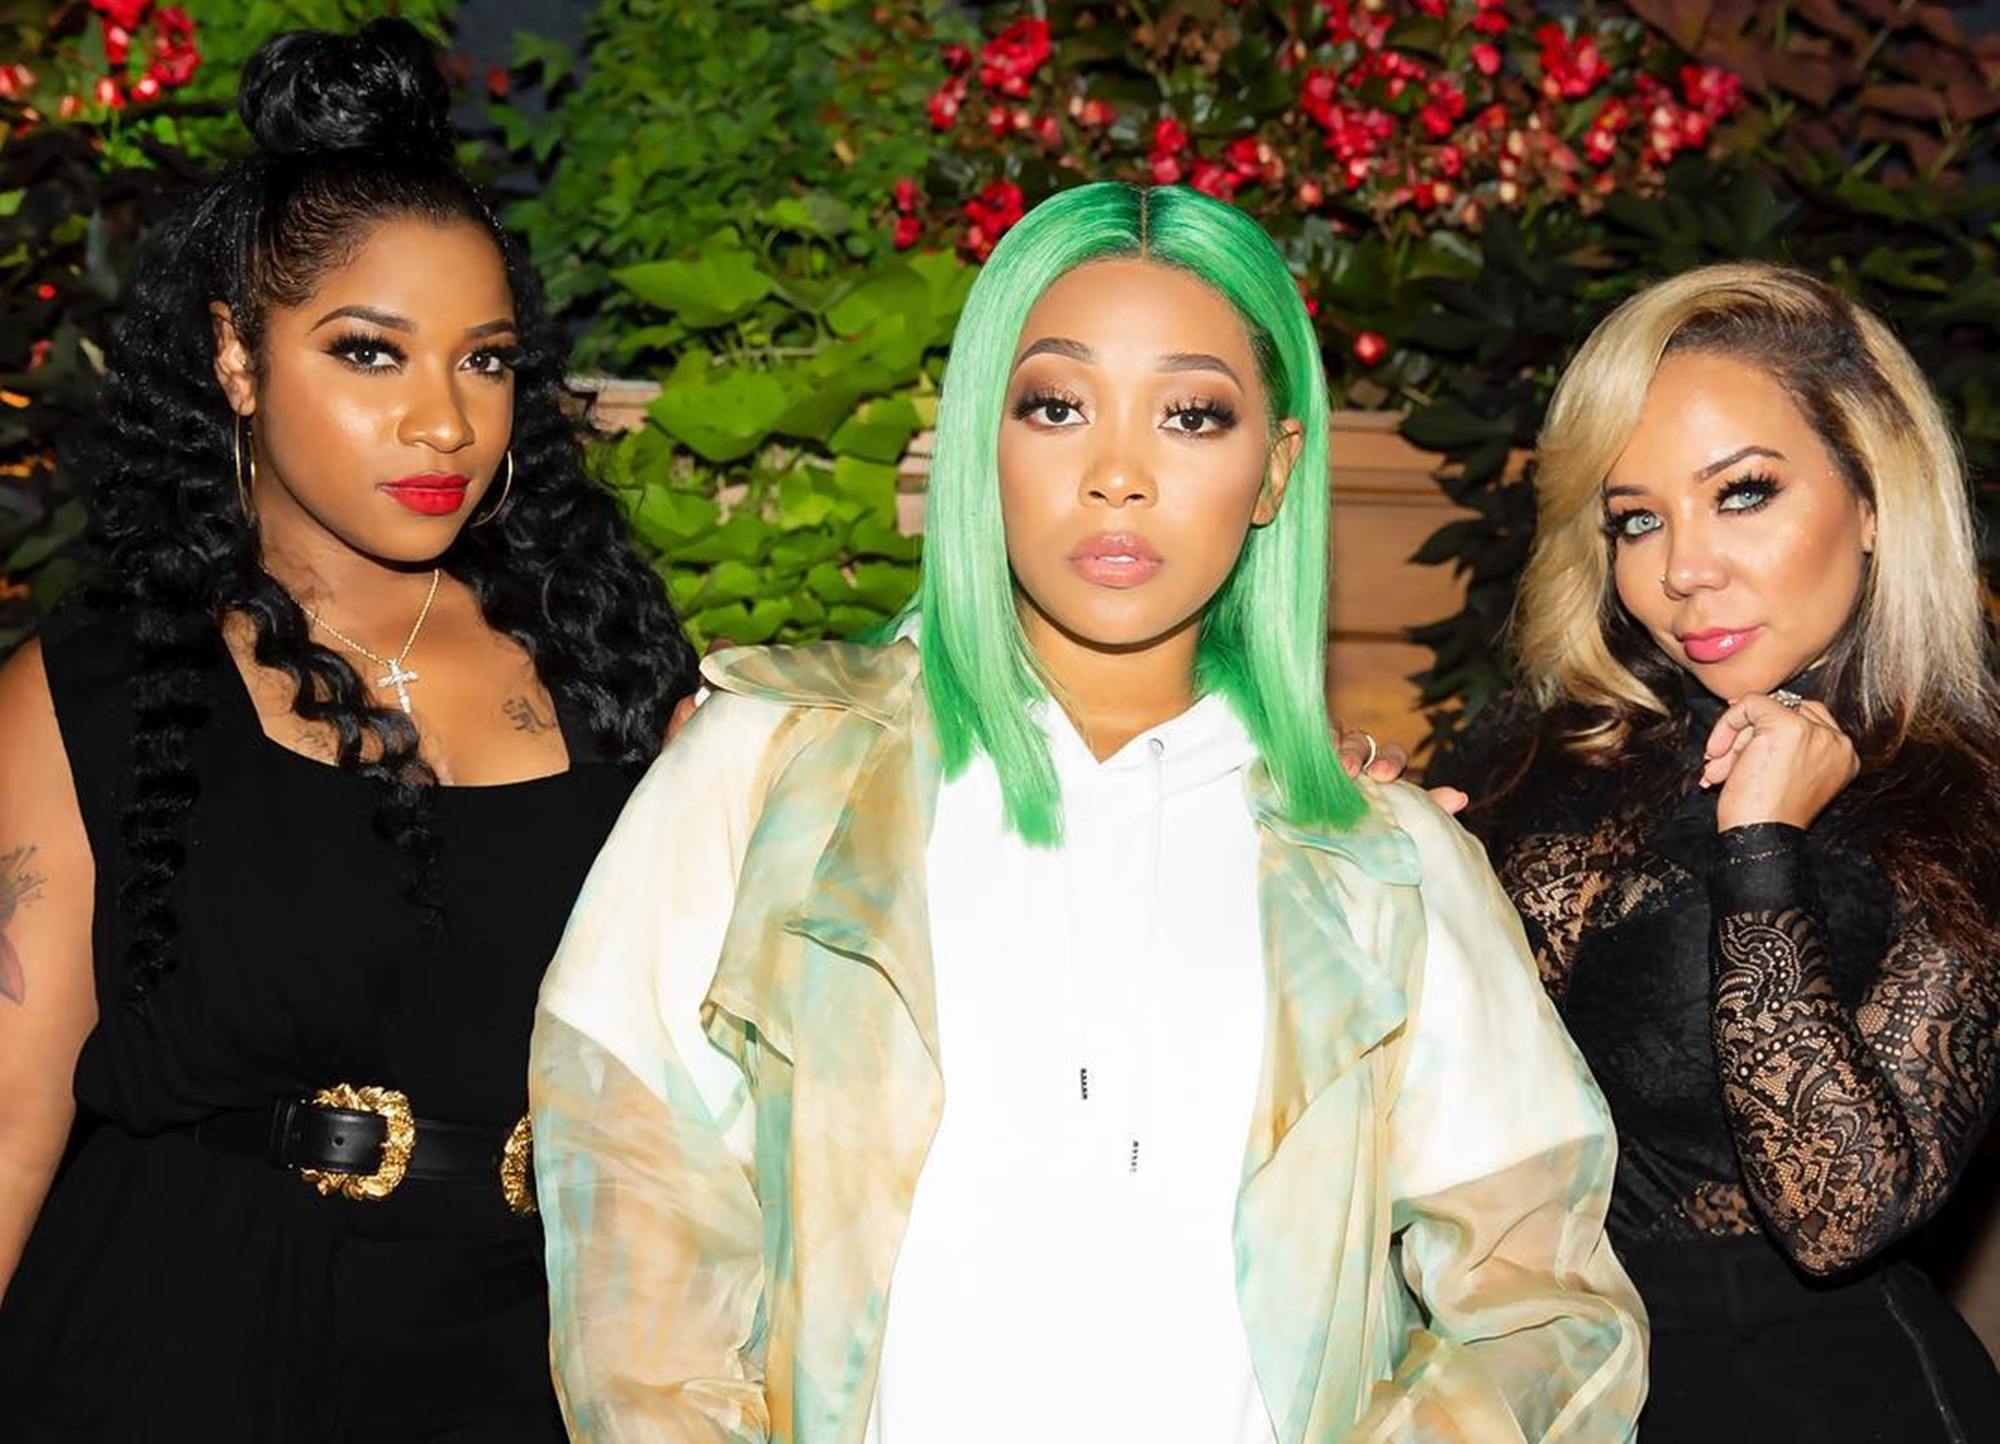 """""""toya-wright-monica-brown-and-tiny-harris-rock-all-black-outfits-friends-that-slay-together-stay-together-see-the-pics"""""""